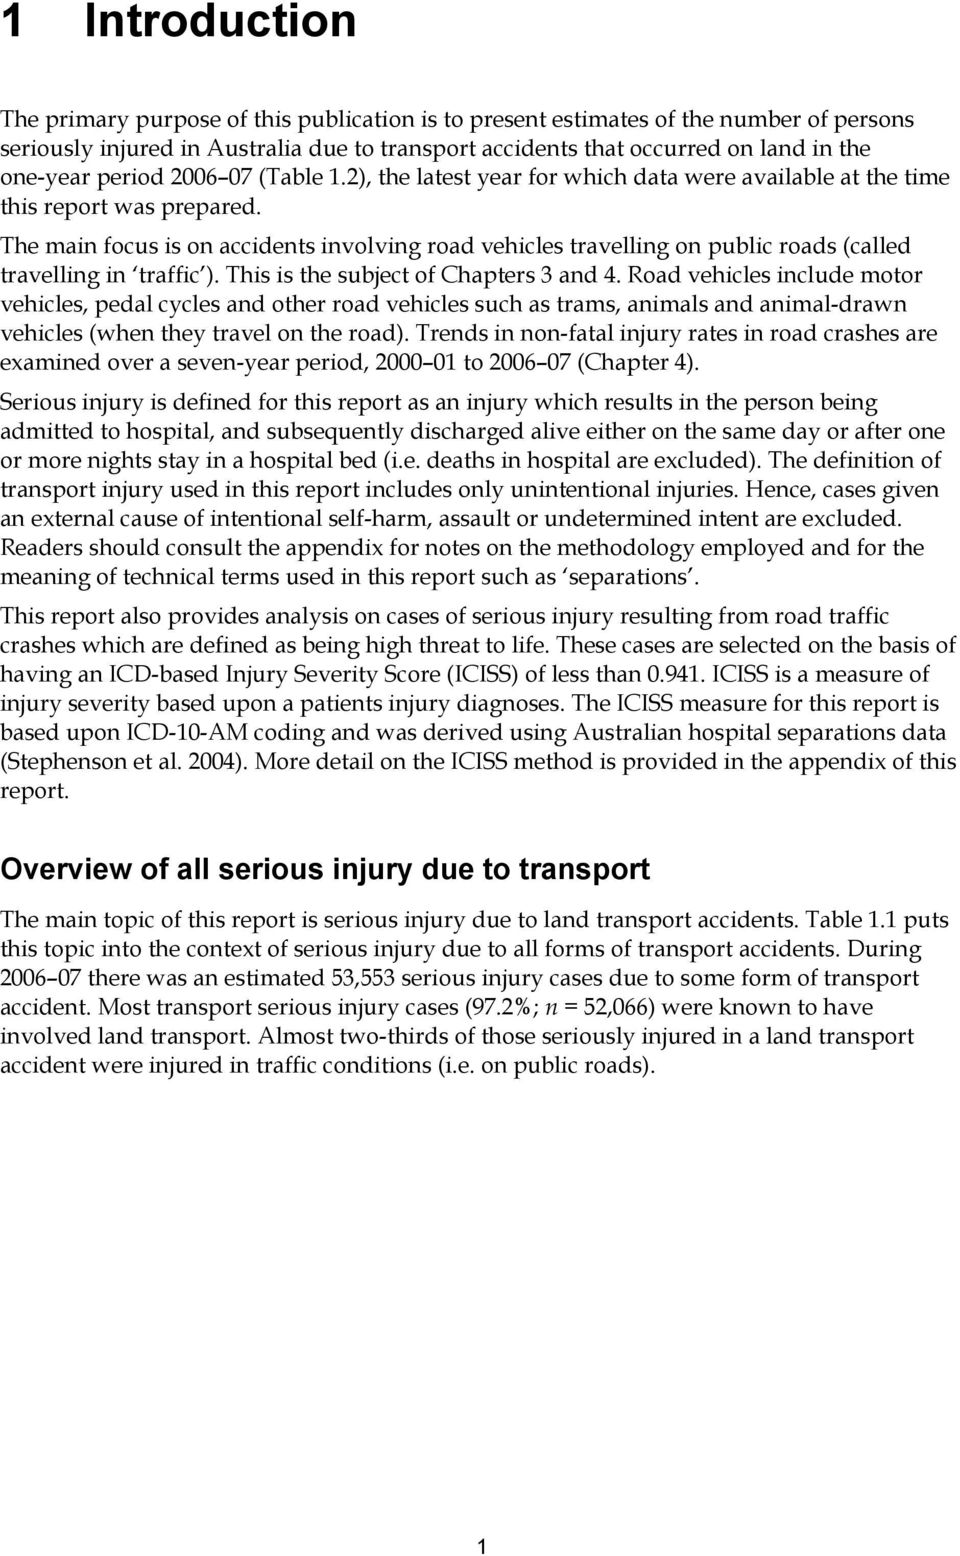 The main focus is on accidents involving road vehicles travelling on public roads (called travelling in traffic ). This is the subject of Chapters 3 and 4.